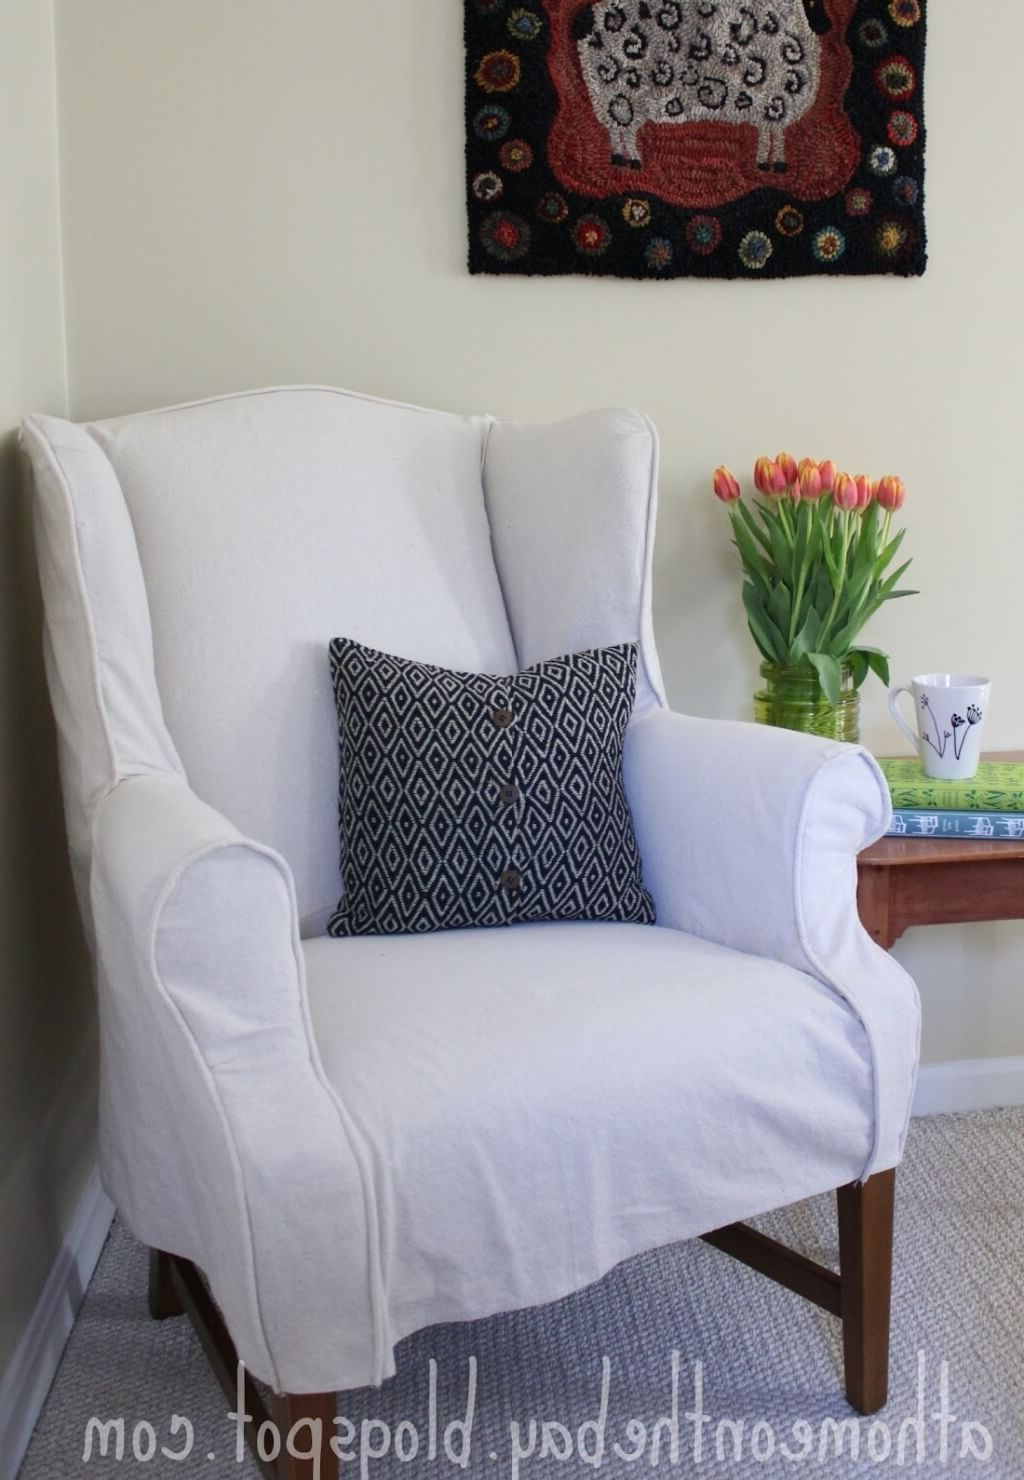 Pottery Barn Chair Slipcovers For Chairs How To Cover A Couch With With Current Sofa And Chair Slipcovers (View 17 of 20)